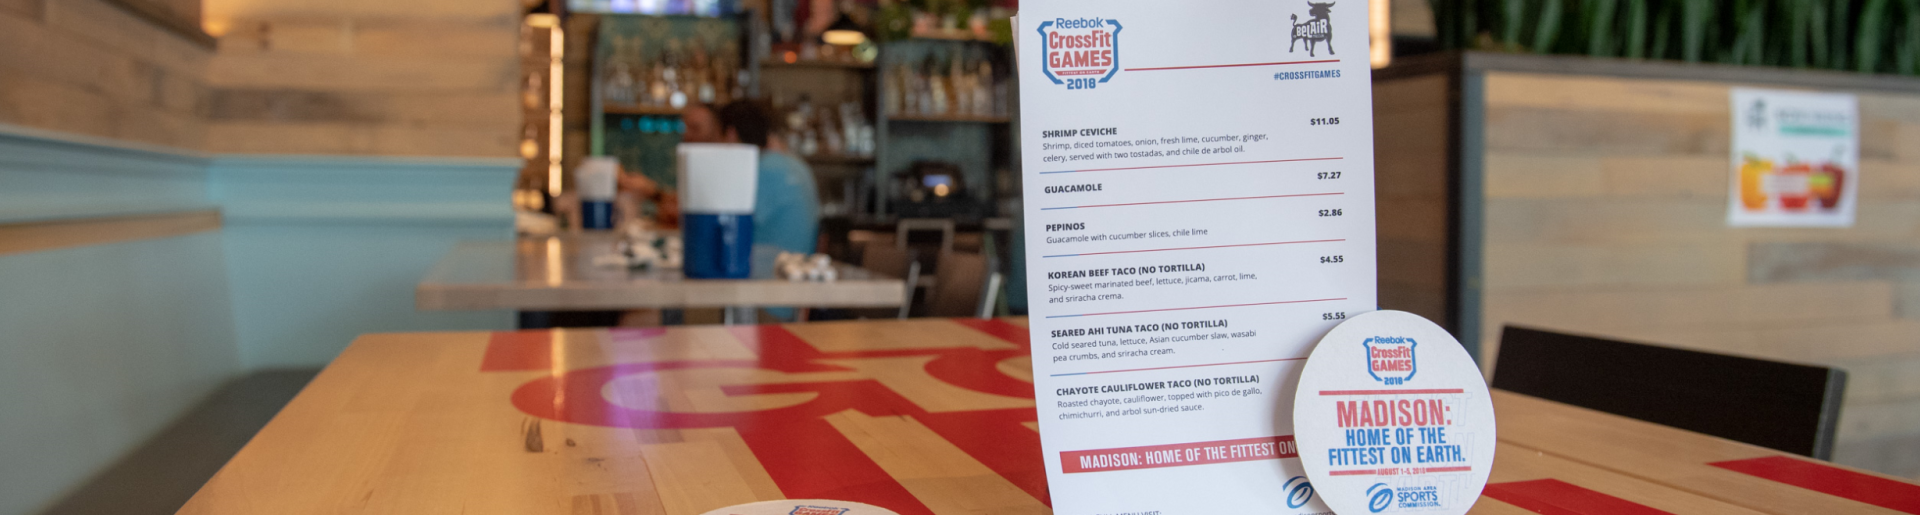 CrossFit Games menu